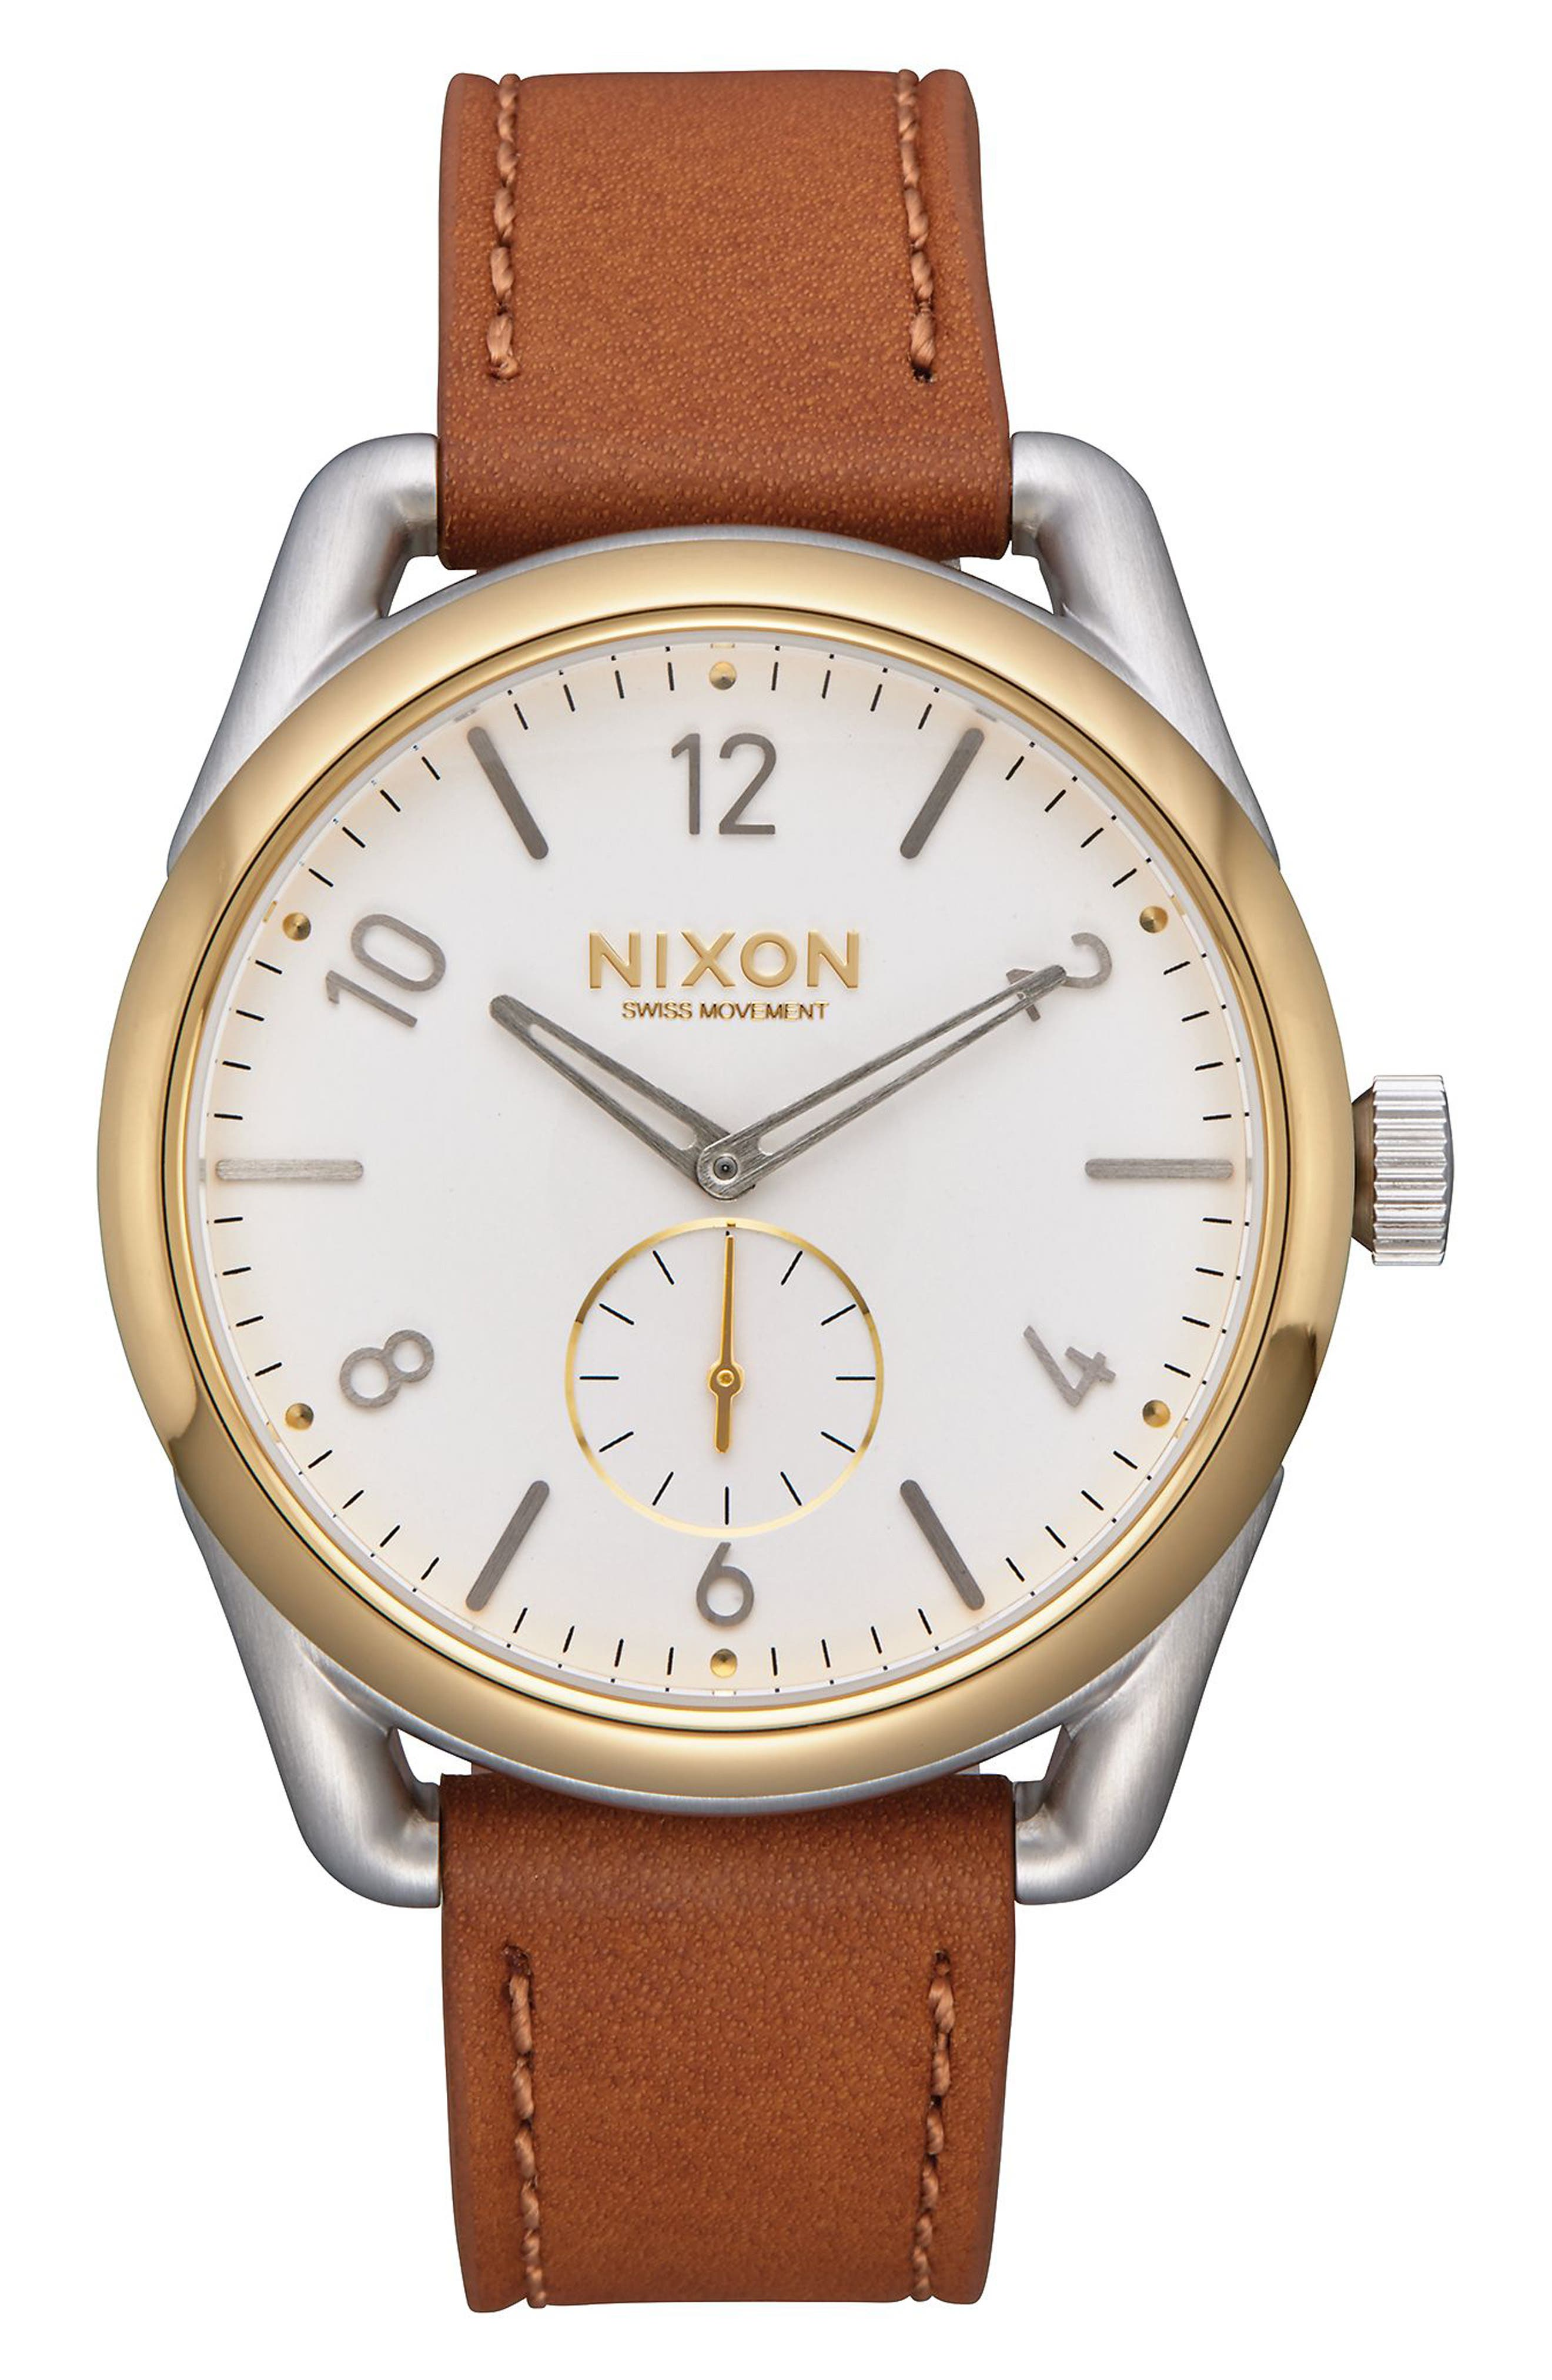 Nixon C39 Leather Strap Watch, 39mm